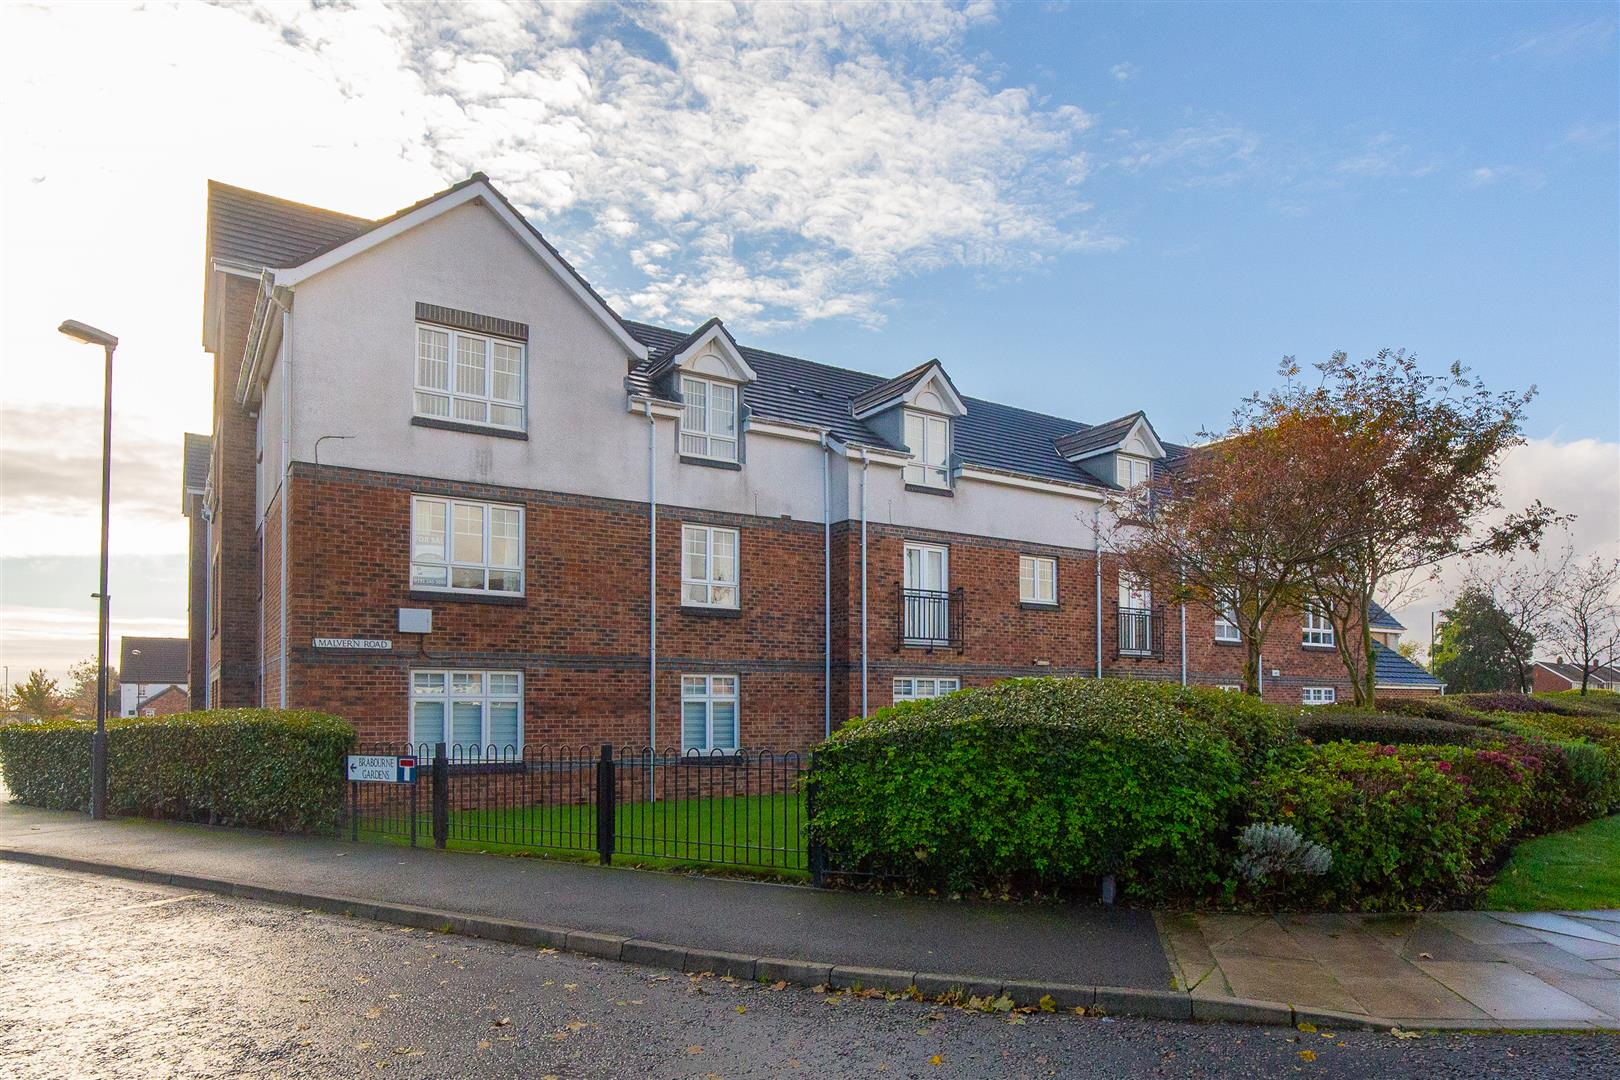 2 bed apartment for sale in North Shields, NE29 9EF  - Property Image 1